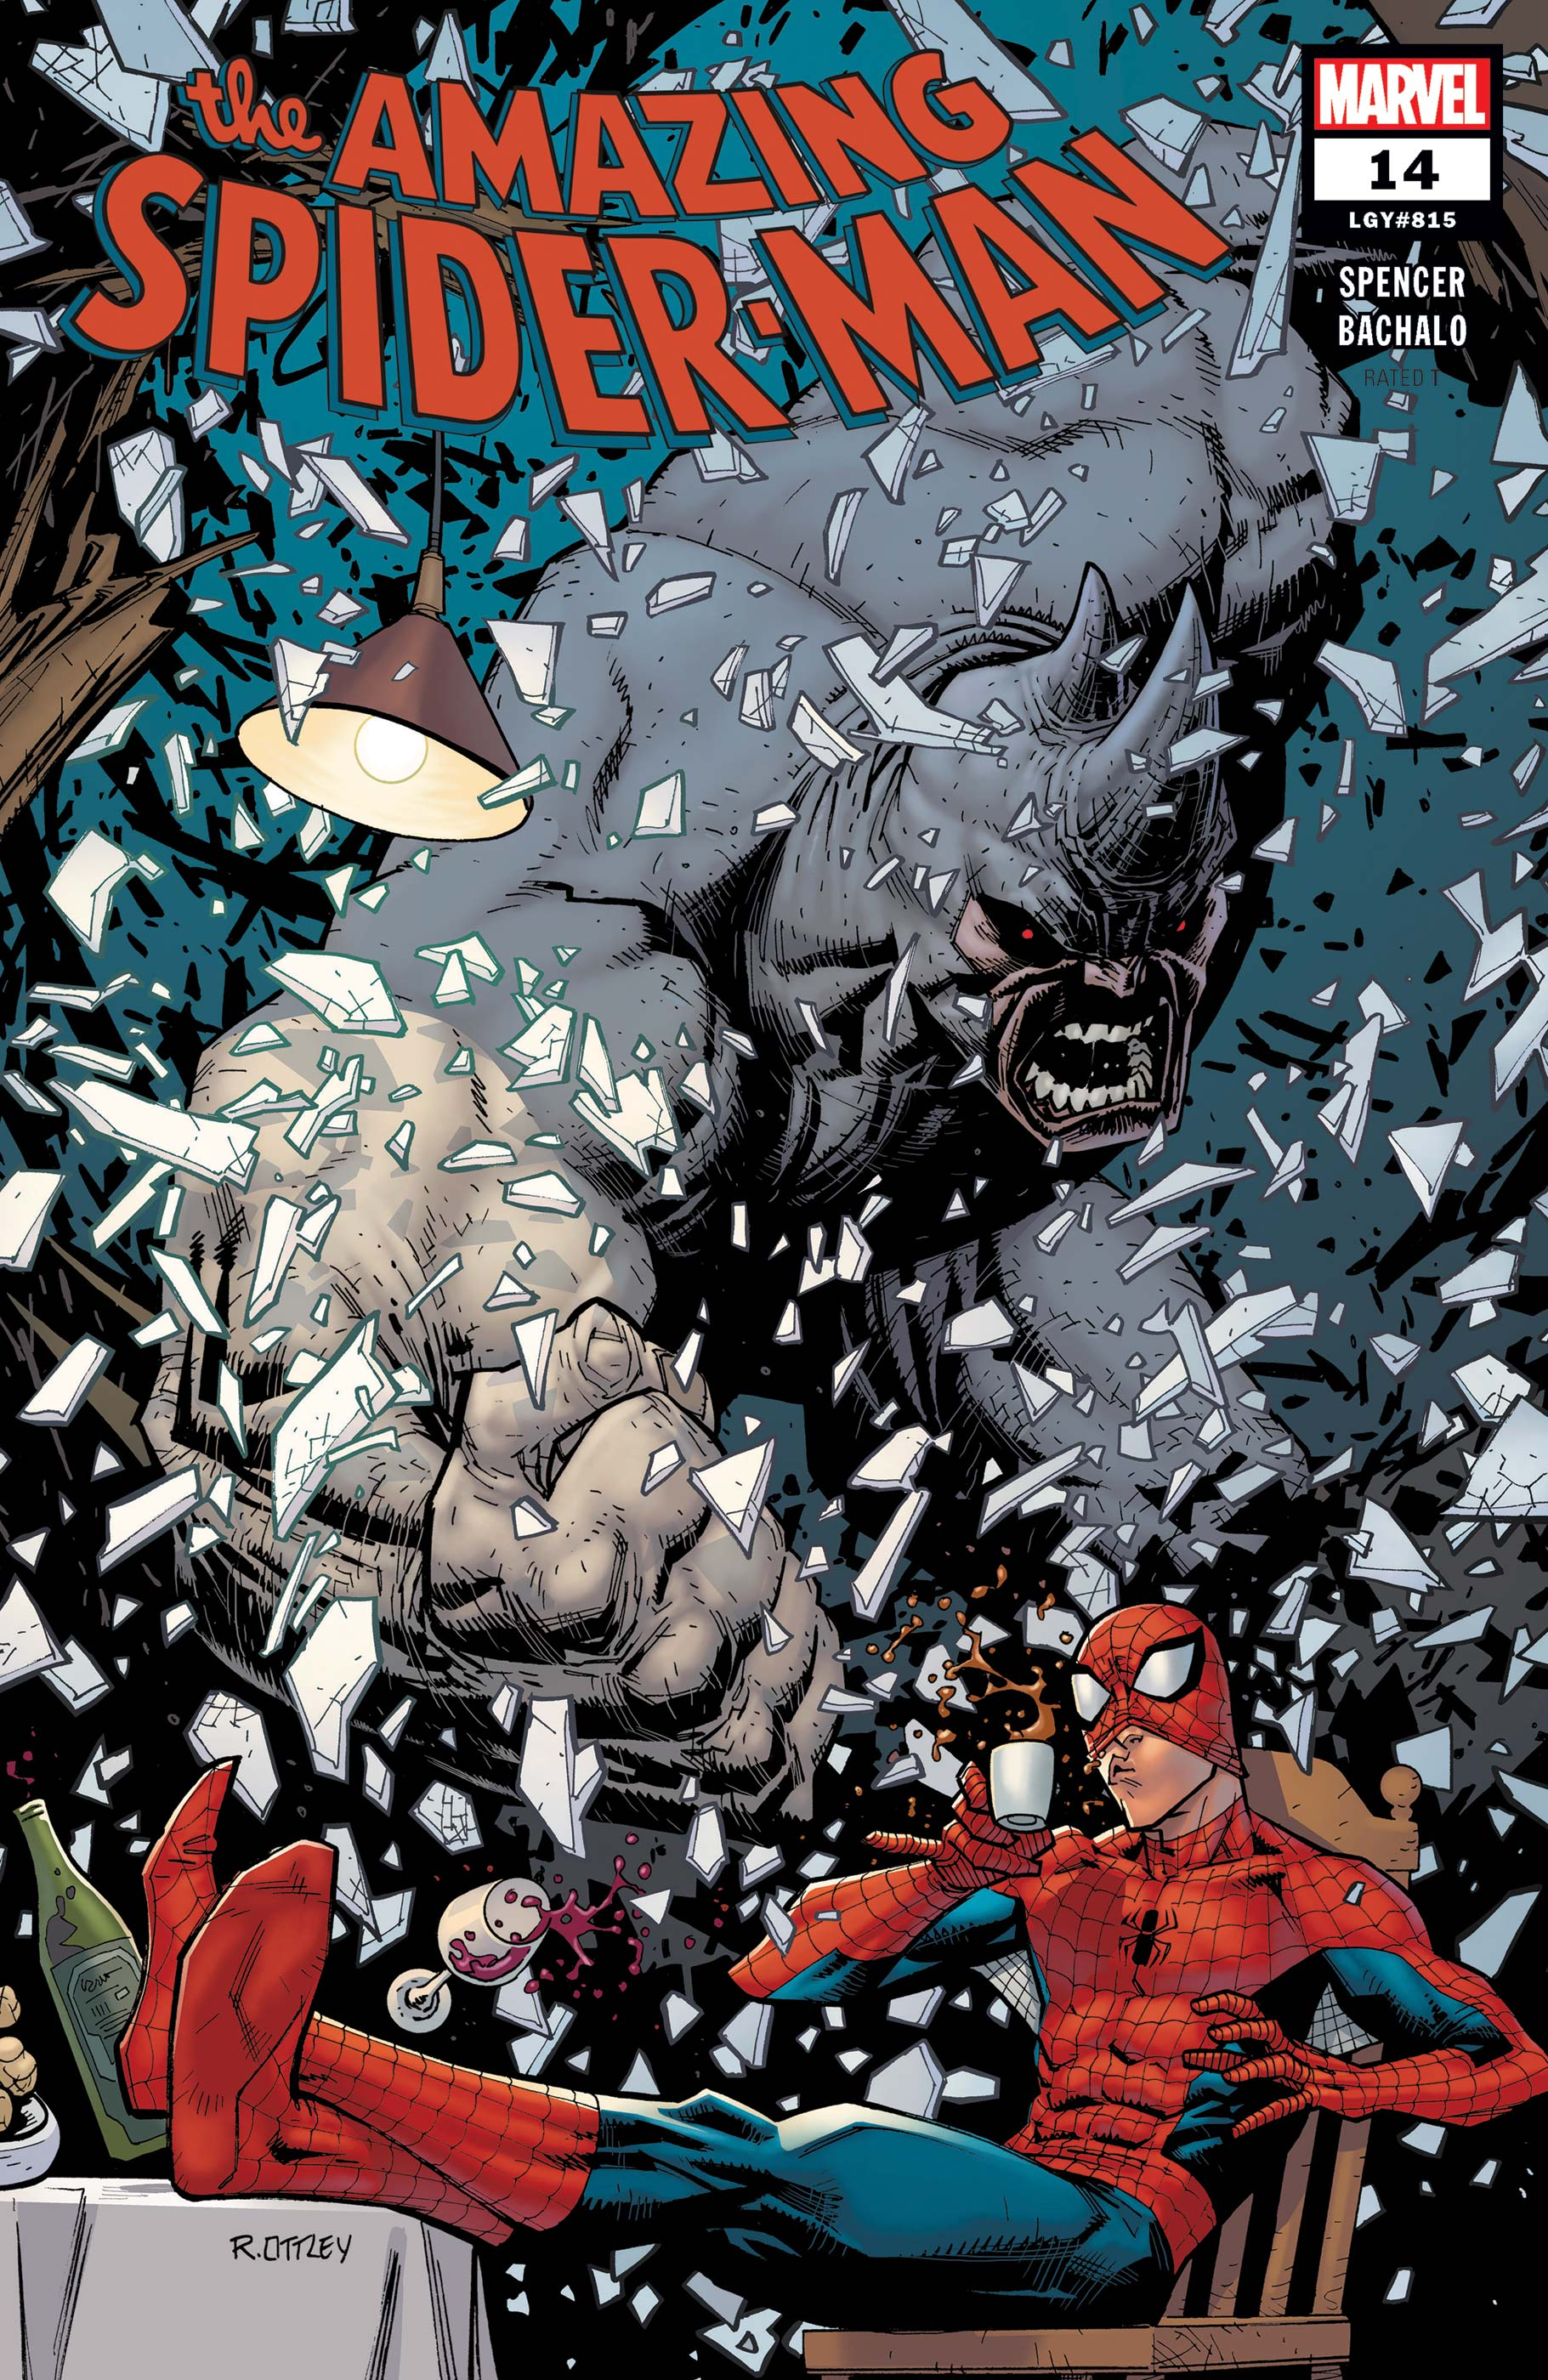 The Amazing Spider-Man (2018) #14